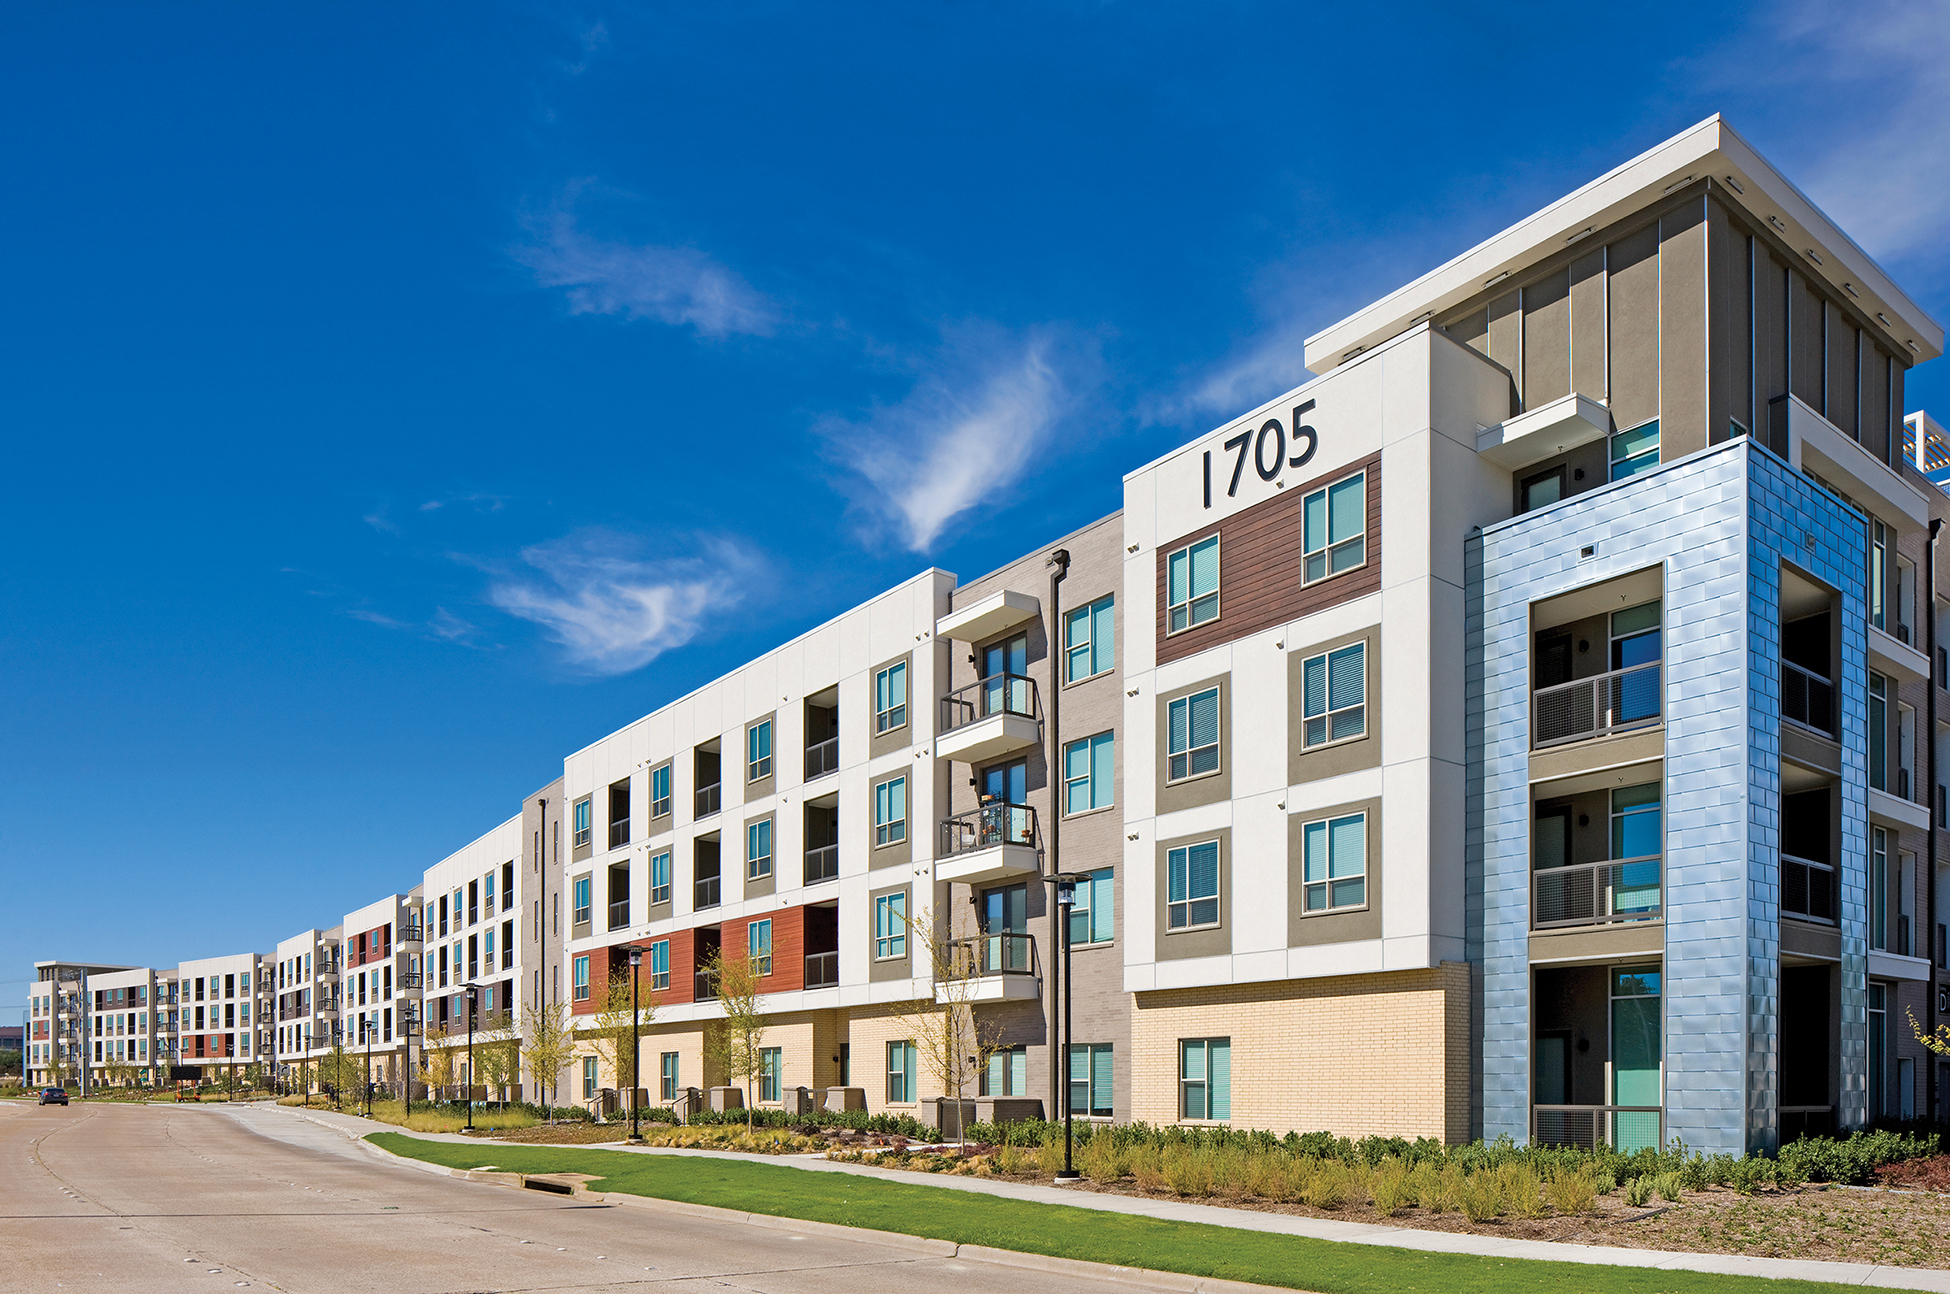 Hunt S The Mallory Eastside Apartments Enters Leasing Homestretch Business Wire